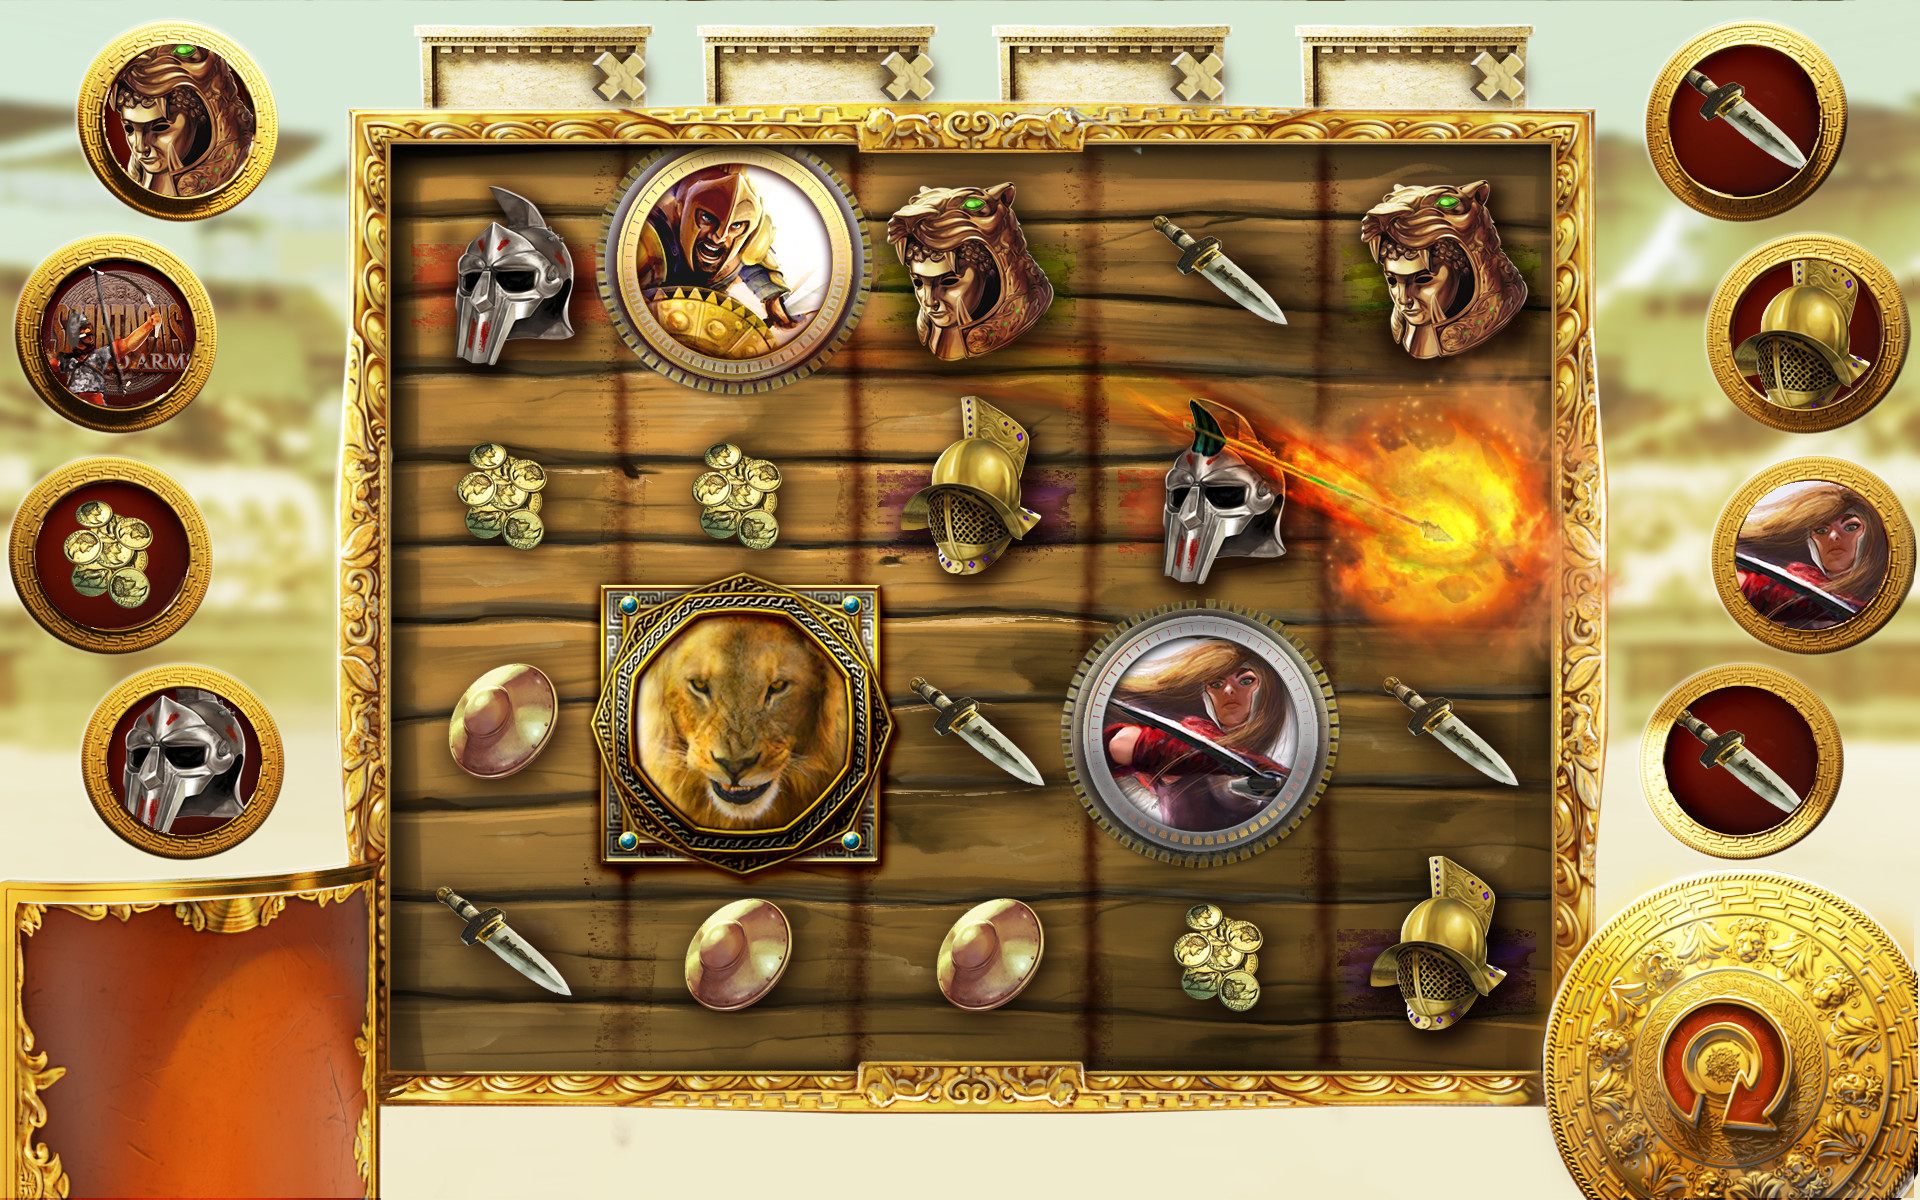 Wild animation concept. When the symbol hits on the special side panels, an archer shoots the wild onto the board.